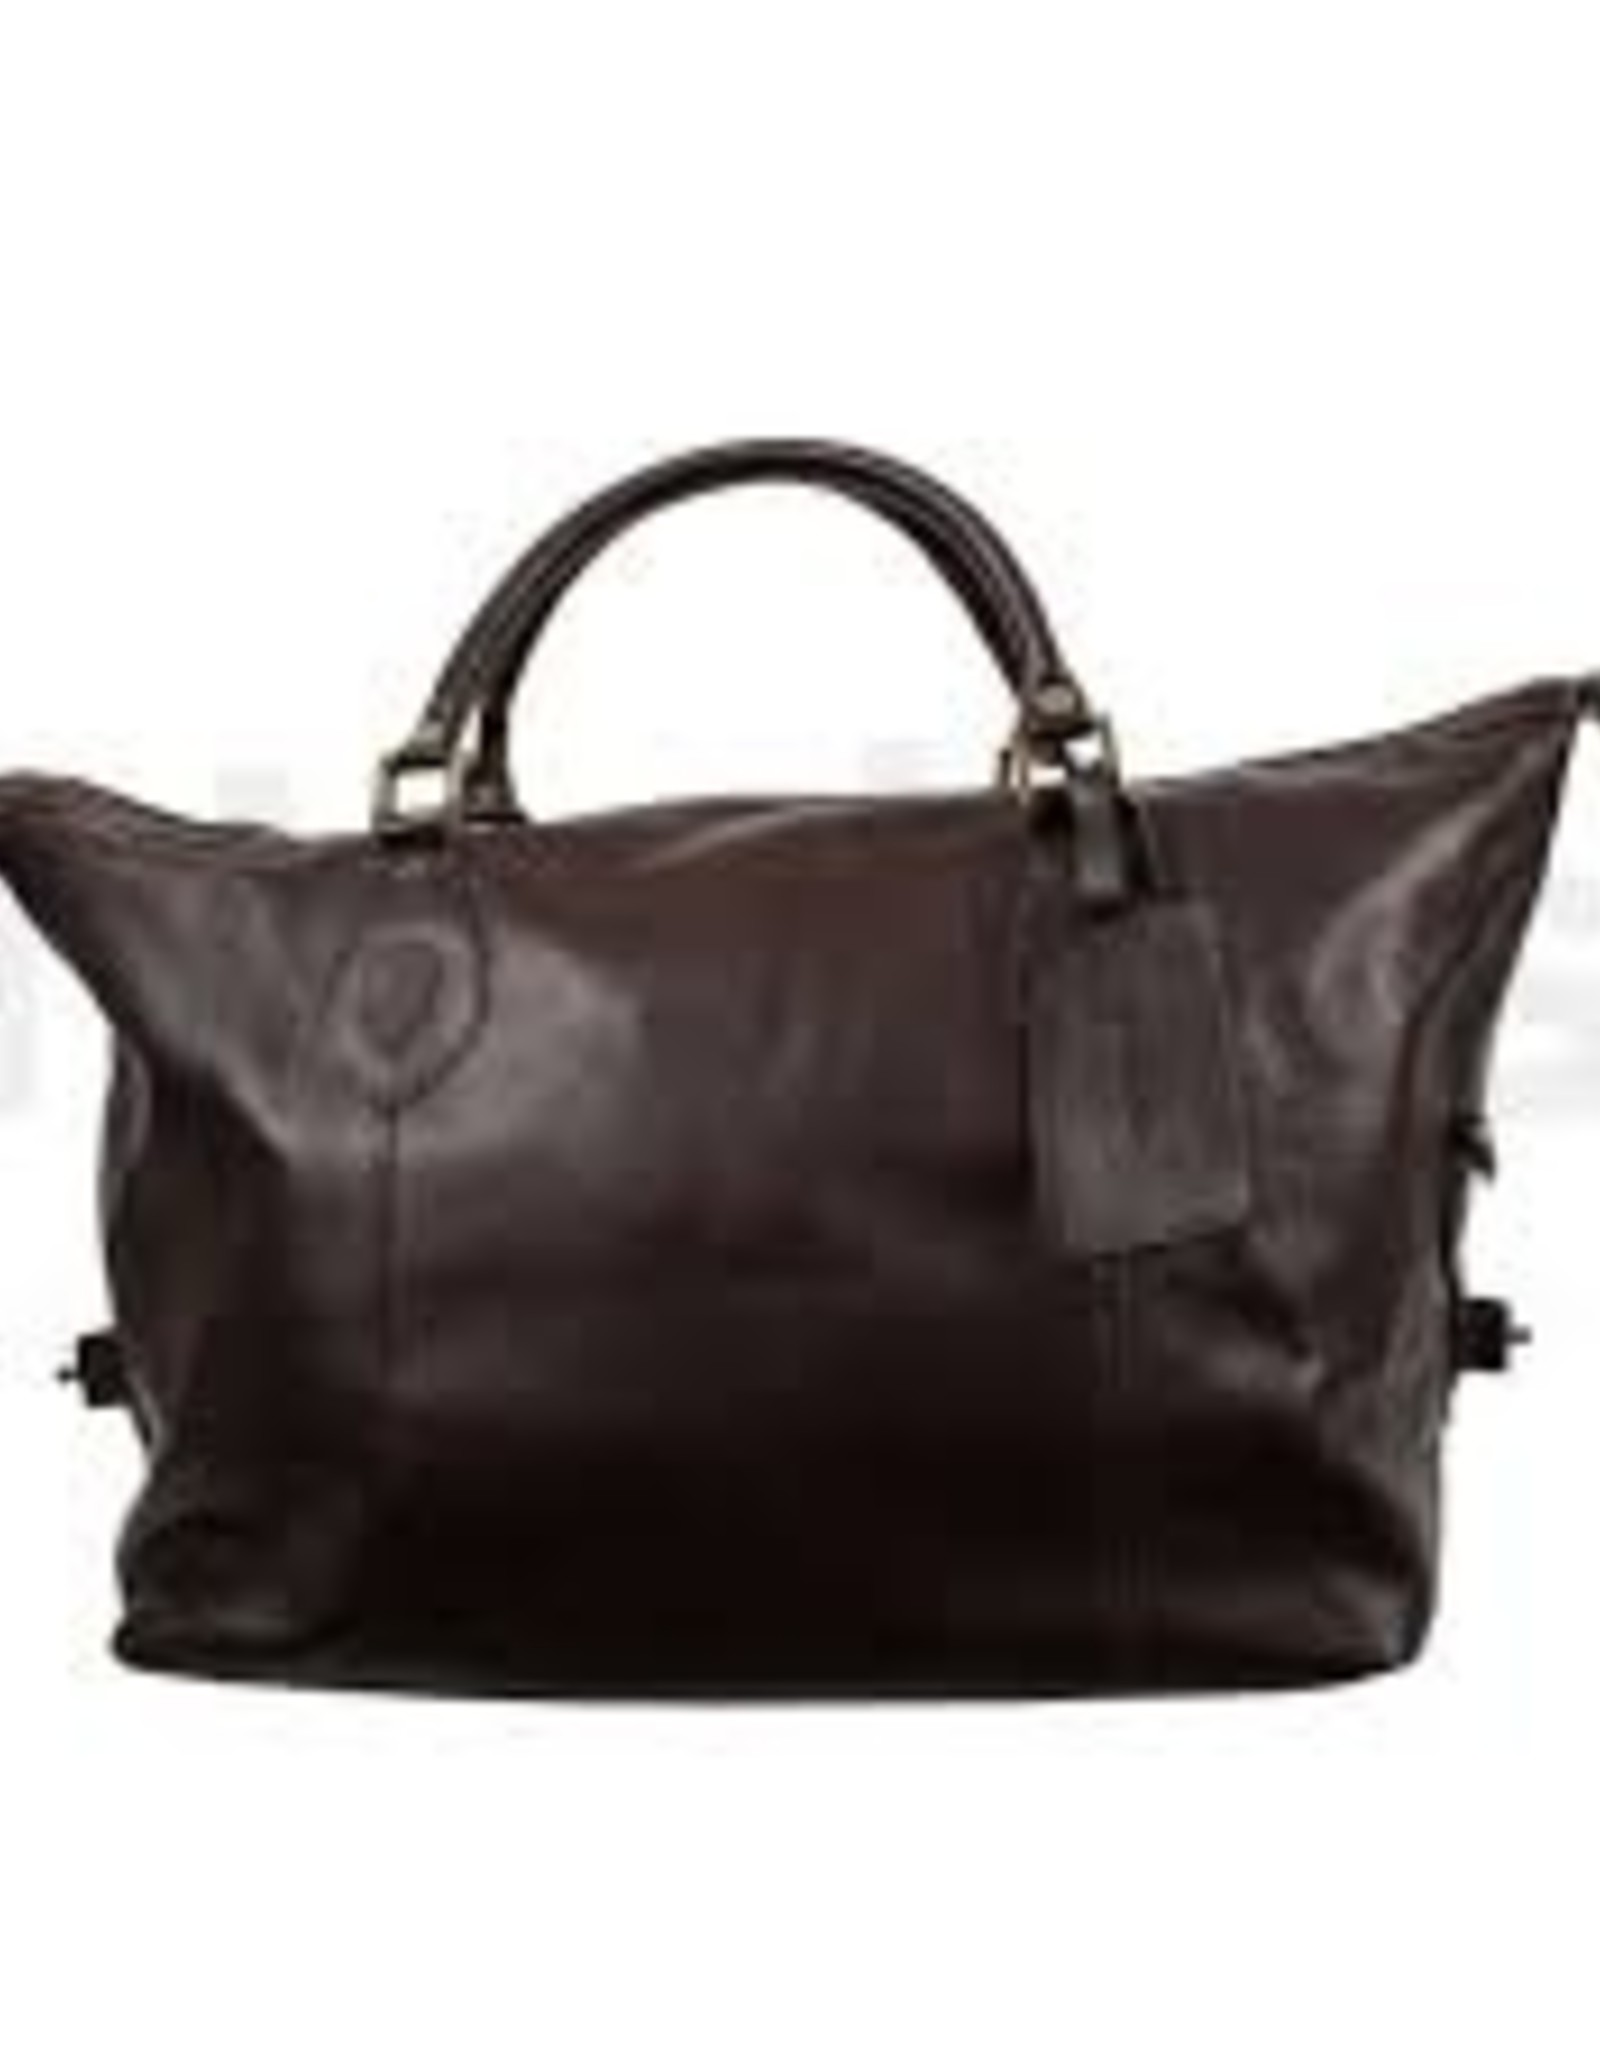 Barbour Barbour Leather Travel Bag